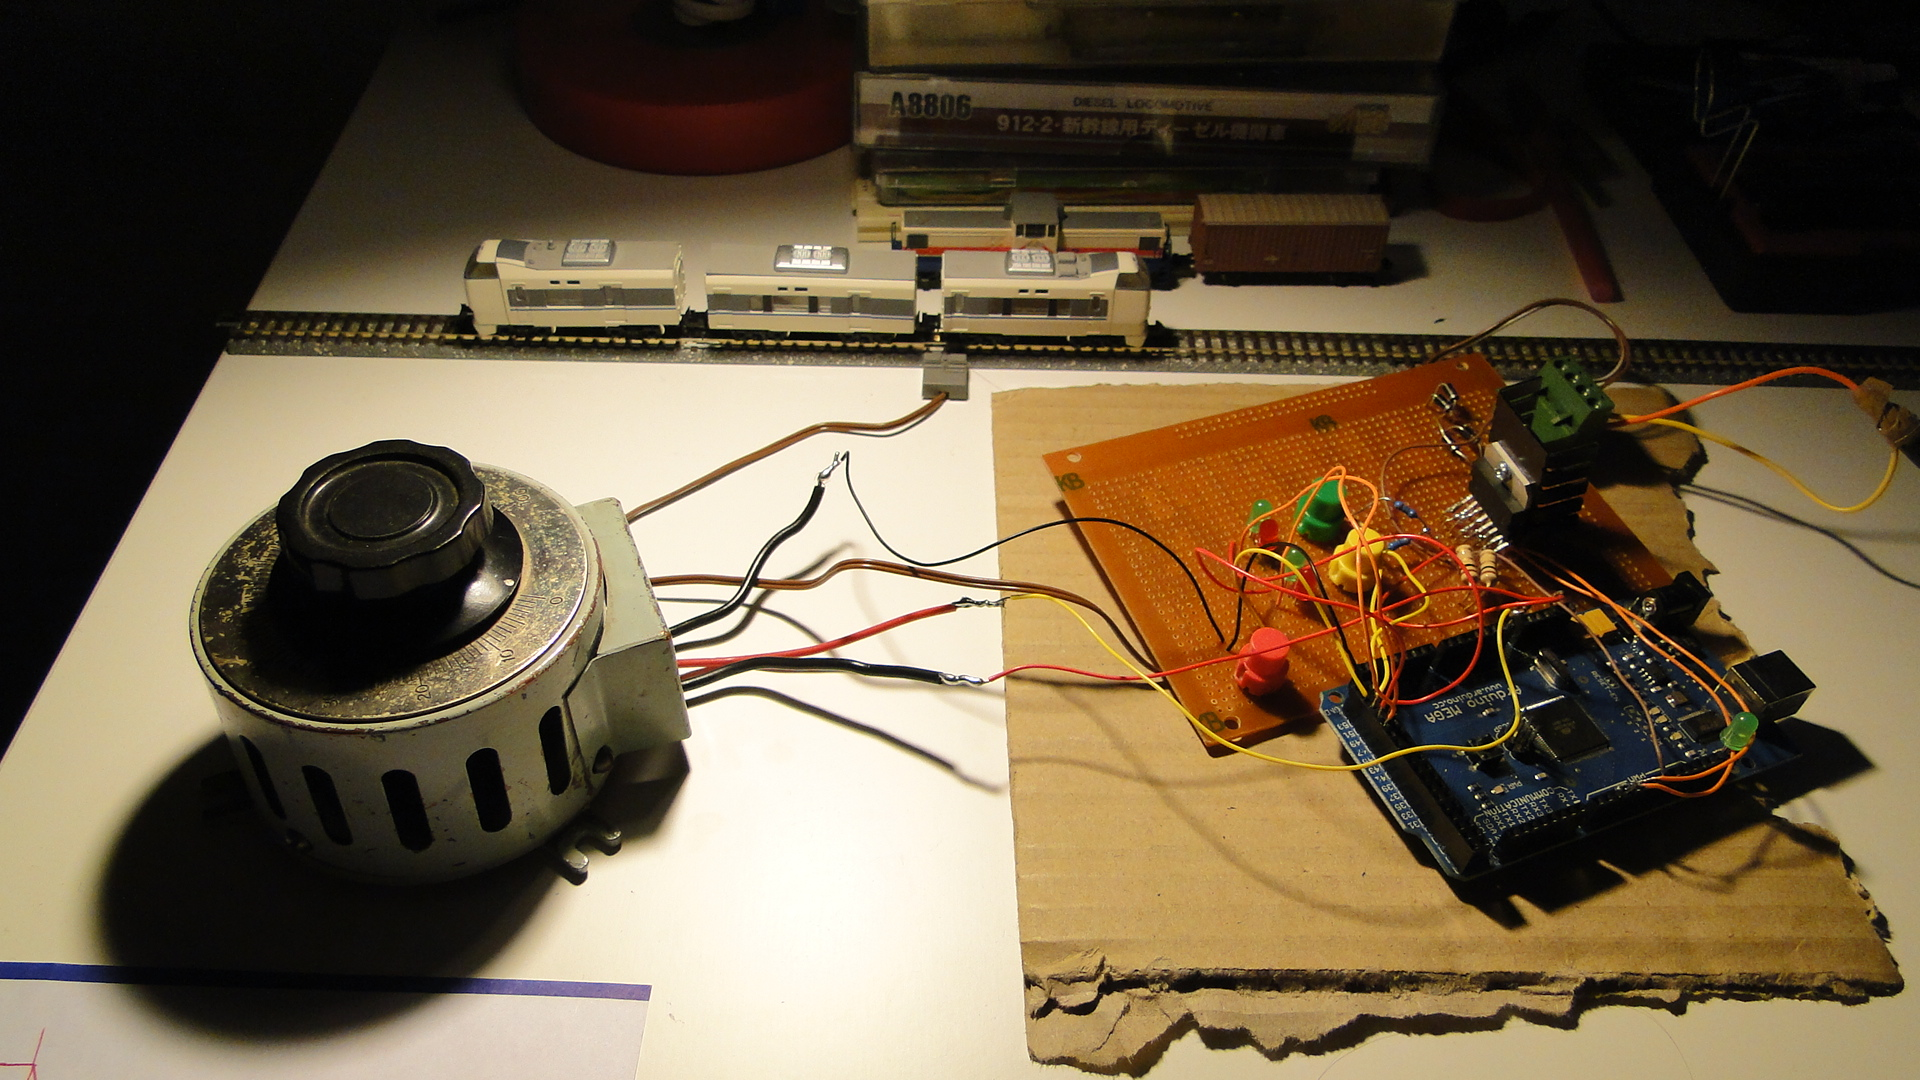 Controlling your trains with an Arduino « modelrail otenko